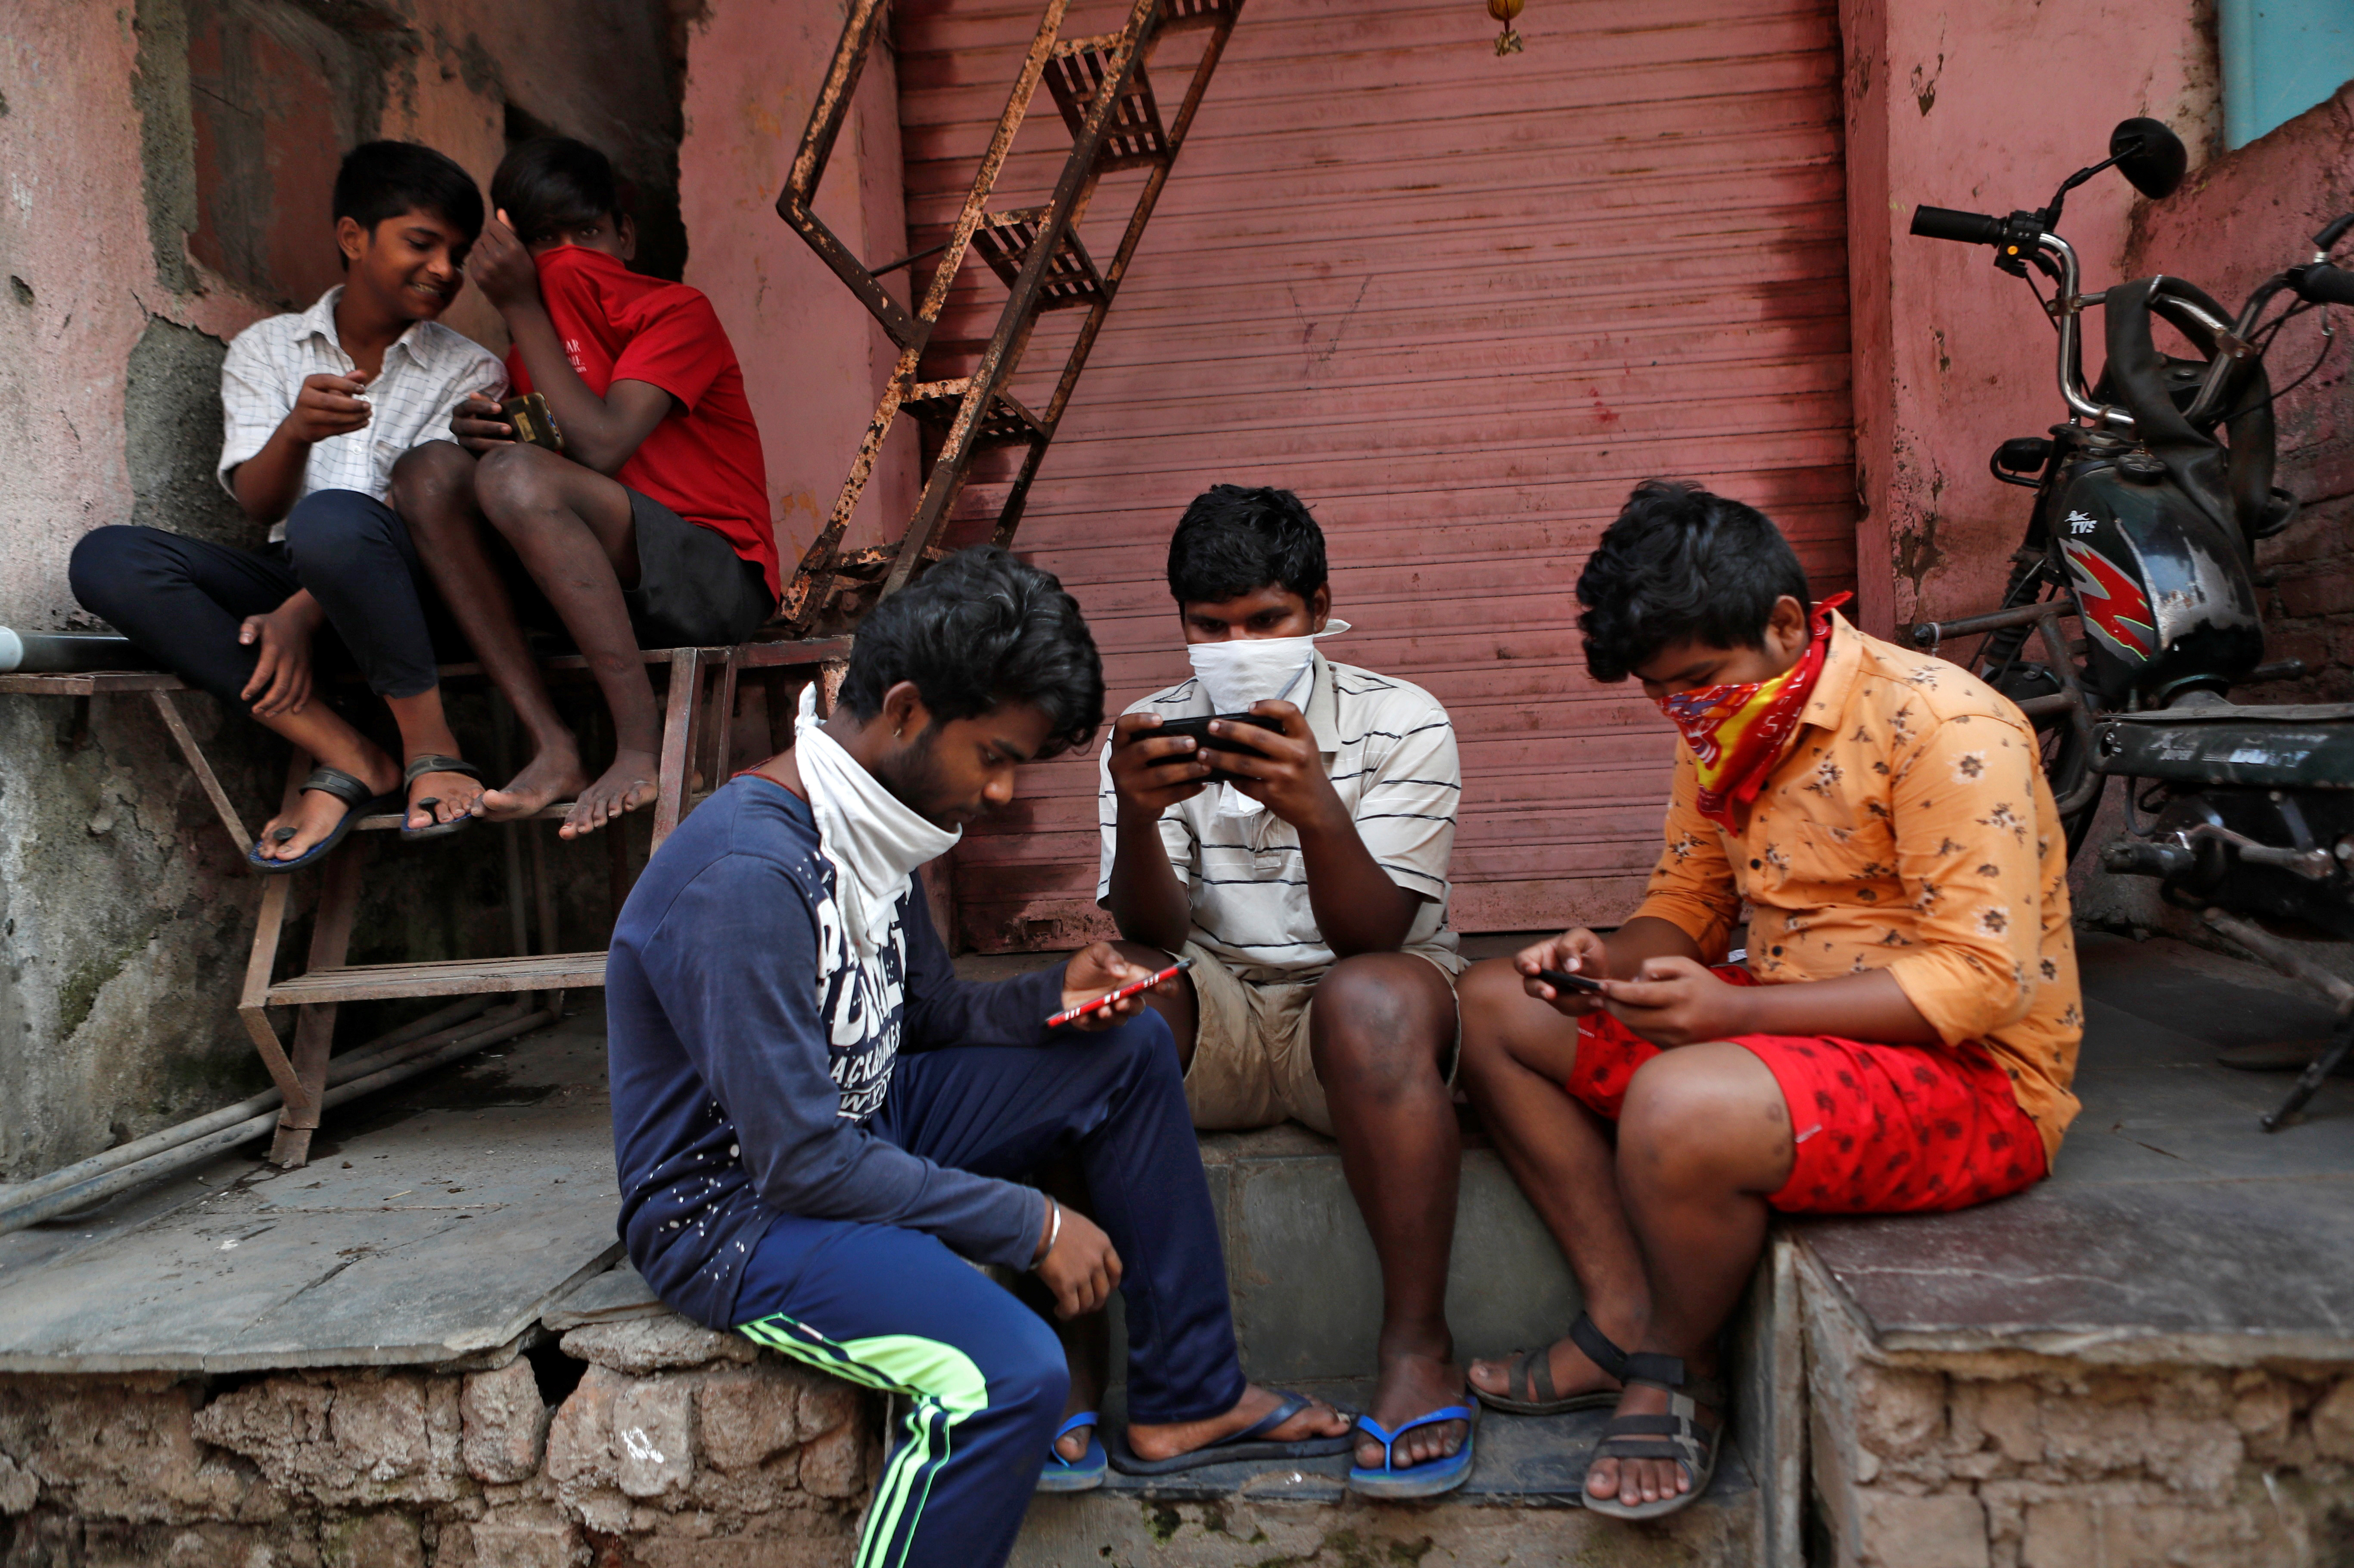 "A group of boys look at their mobile phones, during a nationwide lockdown in India to slow the spread COVID-19, in Dharavi, one of Asia's largest slums, during the coronavirus disease outbreak, in Mumbai, India, April 9, 2020. REUTERS/Francis Mascarenhas      SEARCH ""CORONAVIRUS MUMBAI SLUM"" FOR THIS STORY. SEARCH ""WIDER IMAGE"" FOR ALL STORIES. - RC2Z7G9QKZ3D"